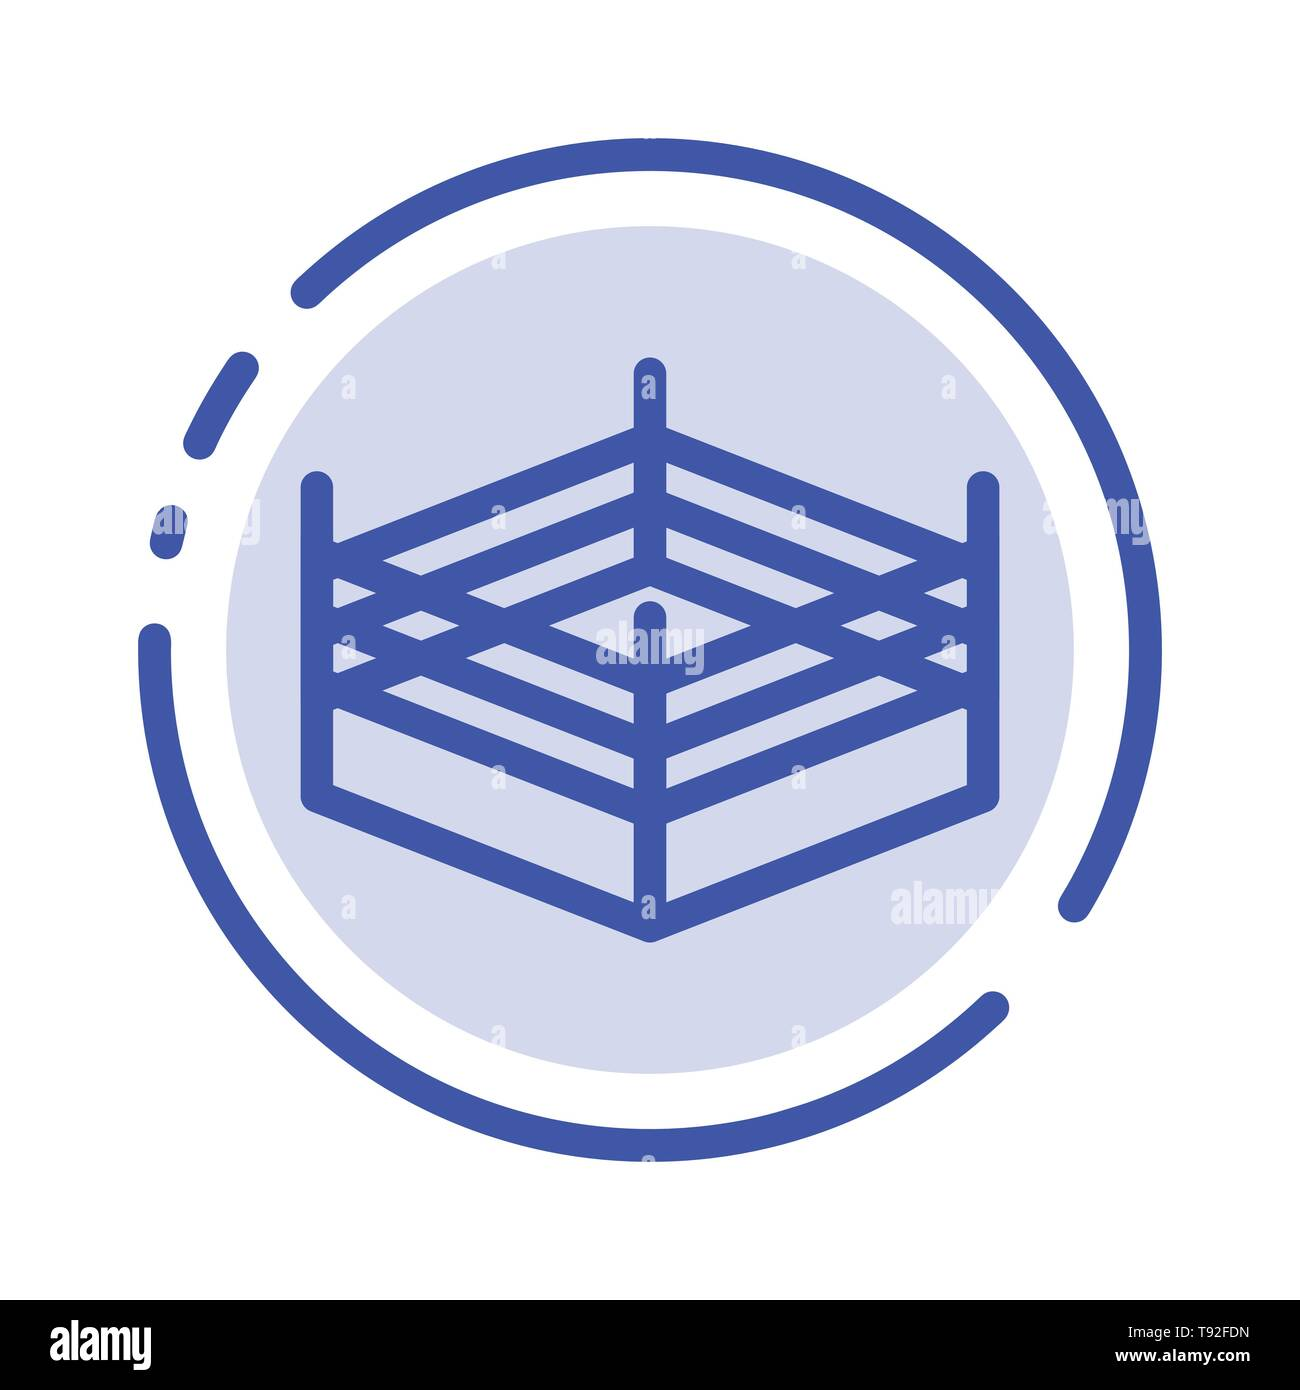 Boxing, Ring, Wrestling Blue Dotted Line Line Icon - Stock Image